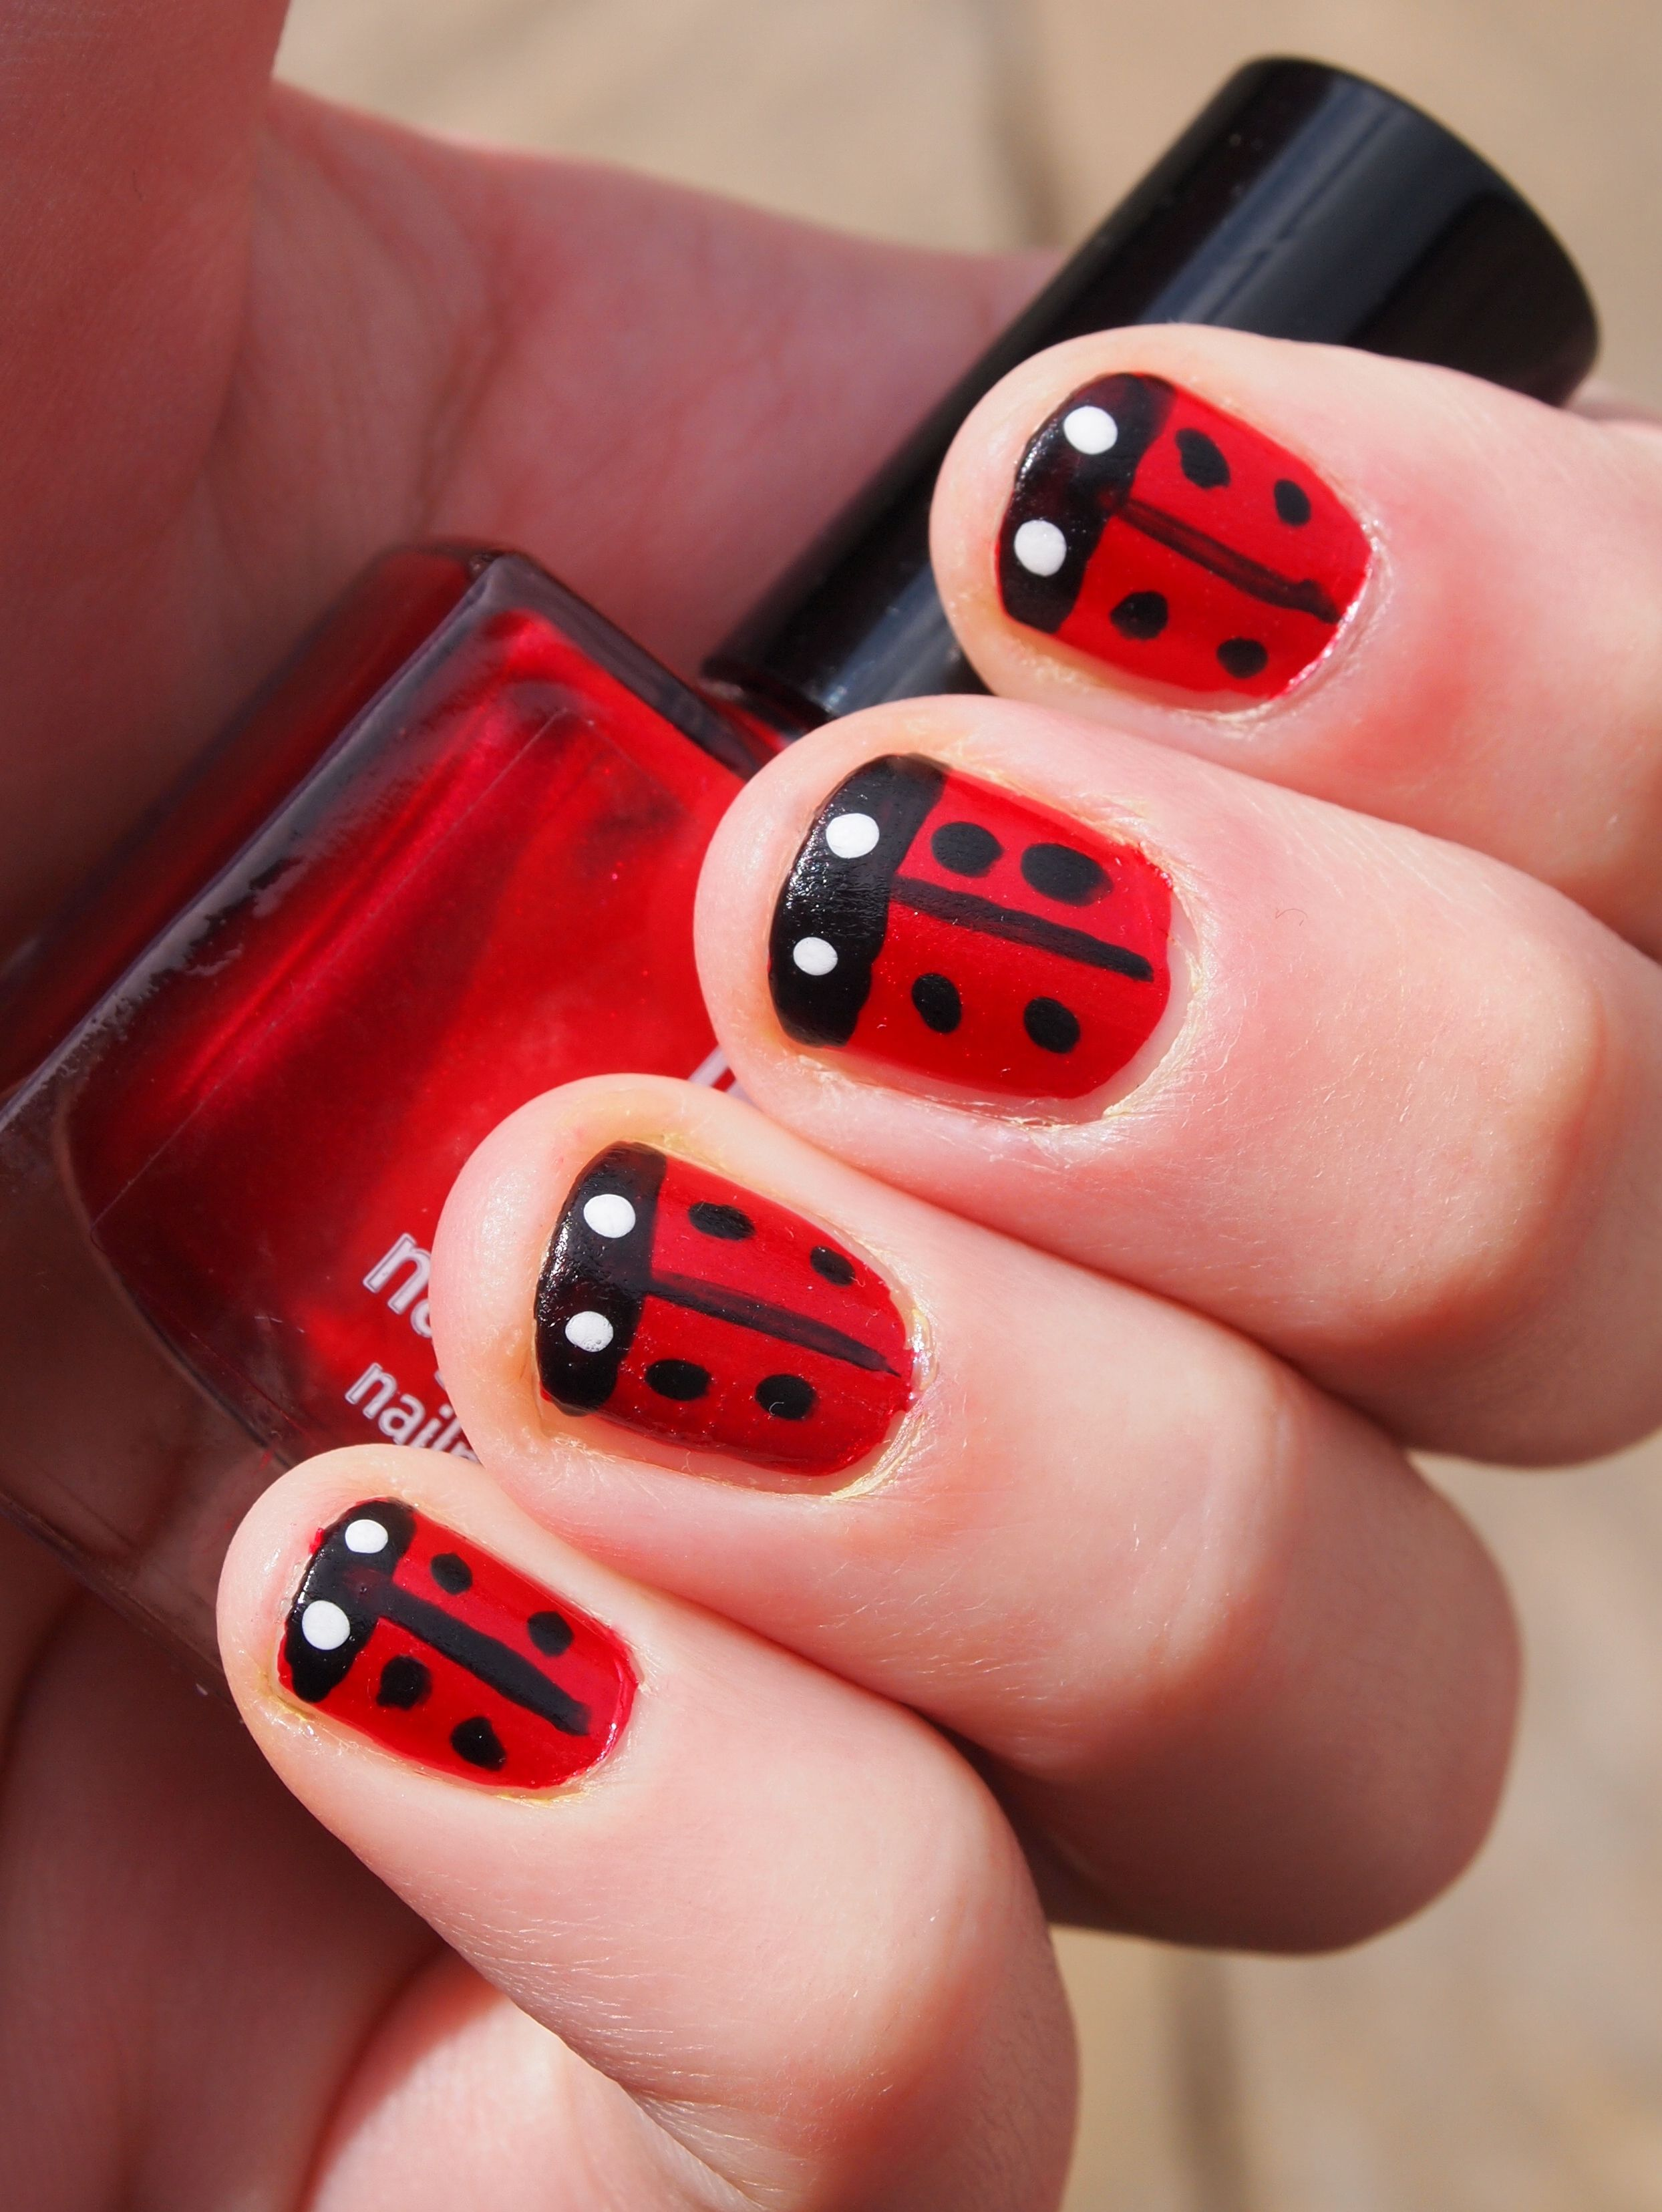 Black and red nail artbewitchery ladybird nail art wctfklo nails black and red nail artbewitchery ladybird nail art wctfklo prinsesfo Gallery